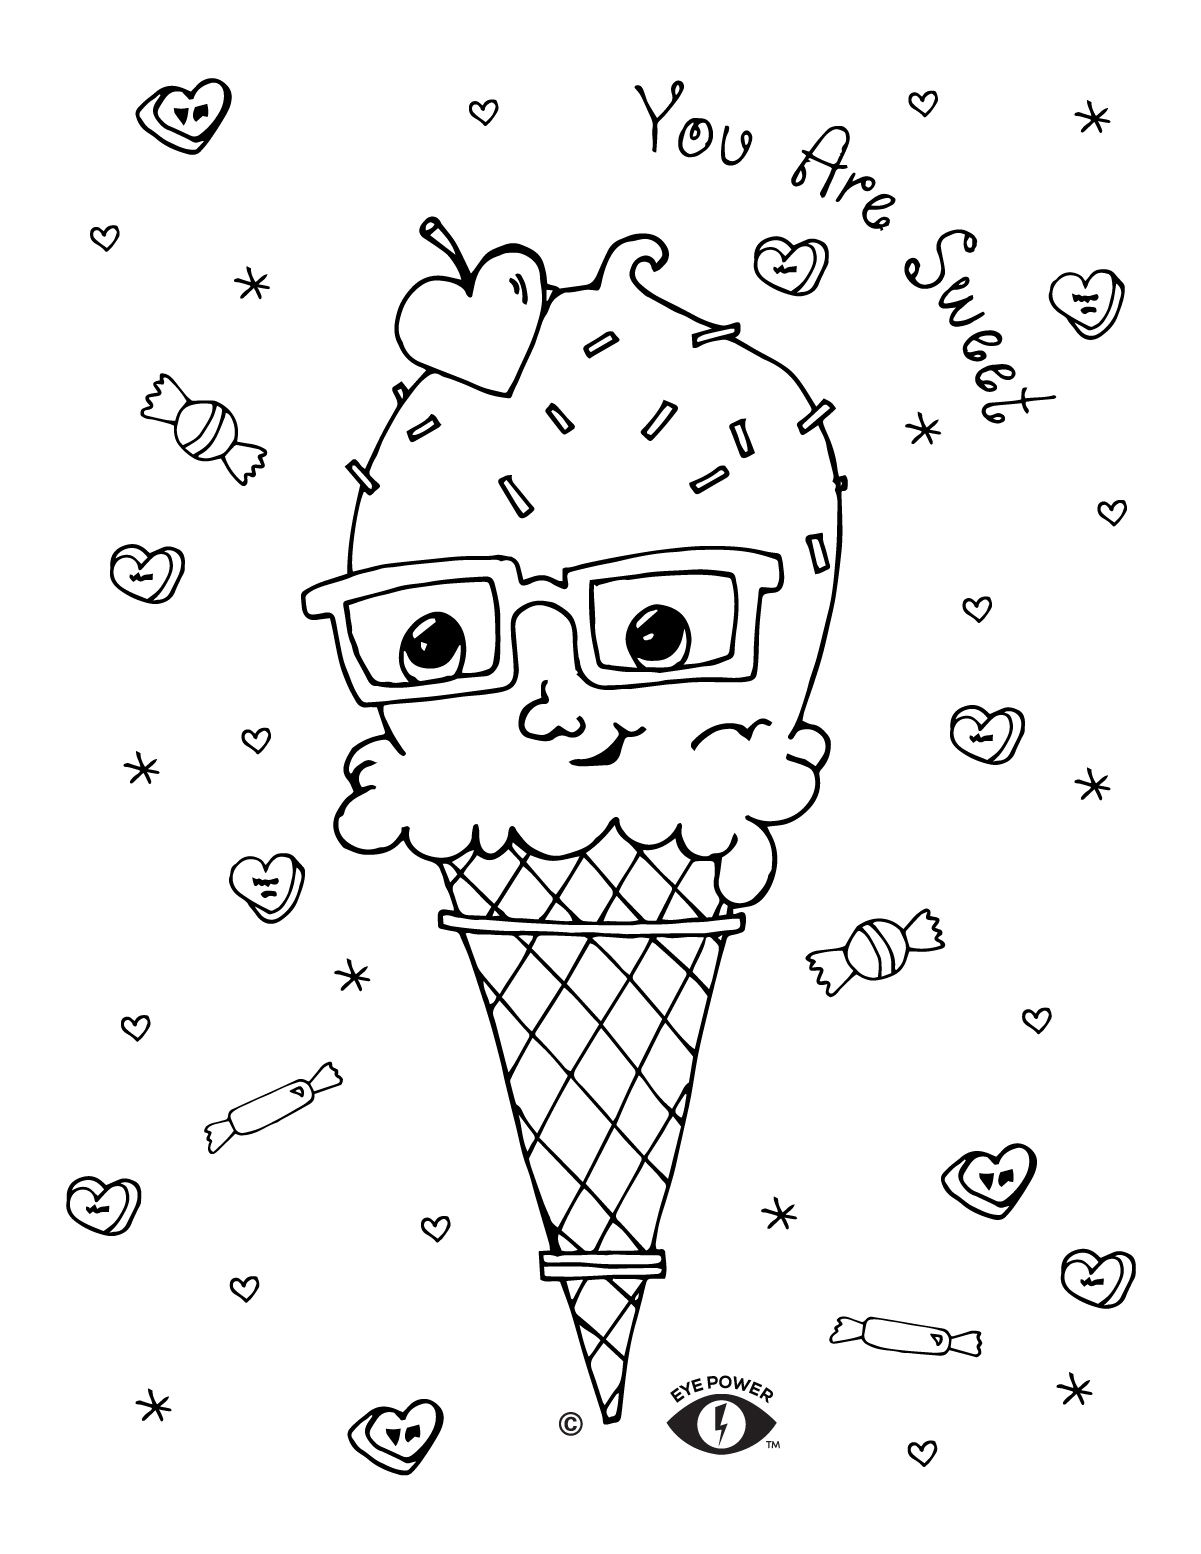 Free coloring page download by Eye Power Kids Wear   Coloring Pages ...